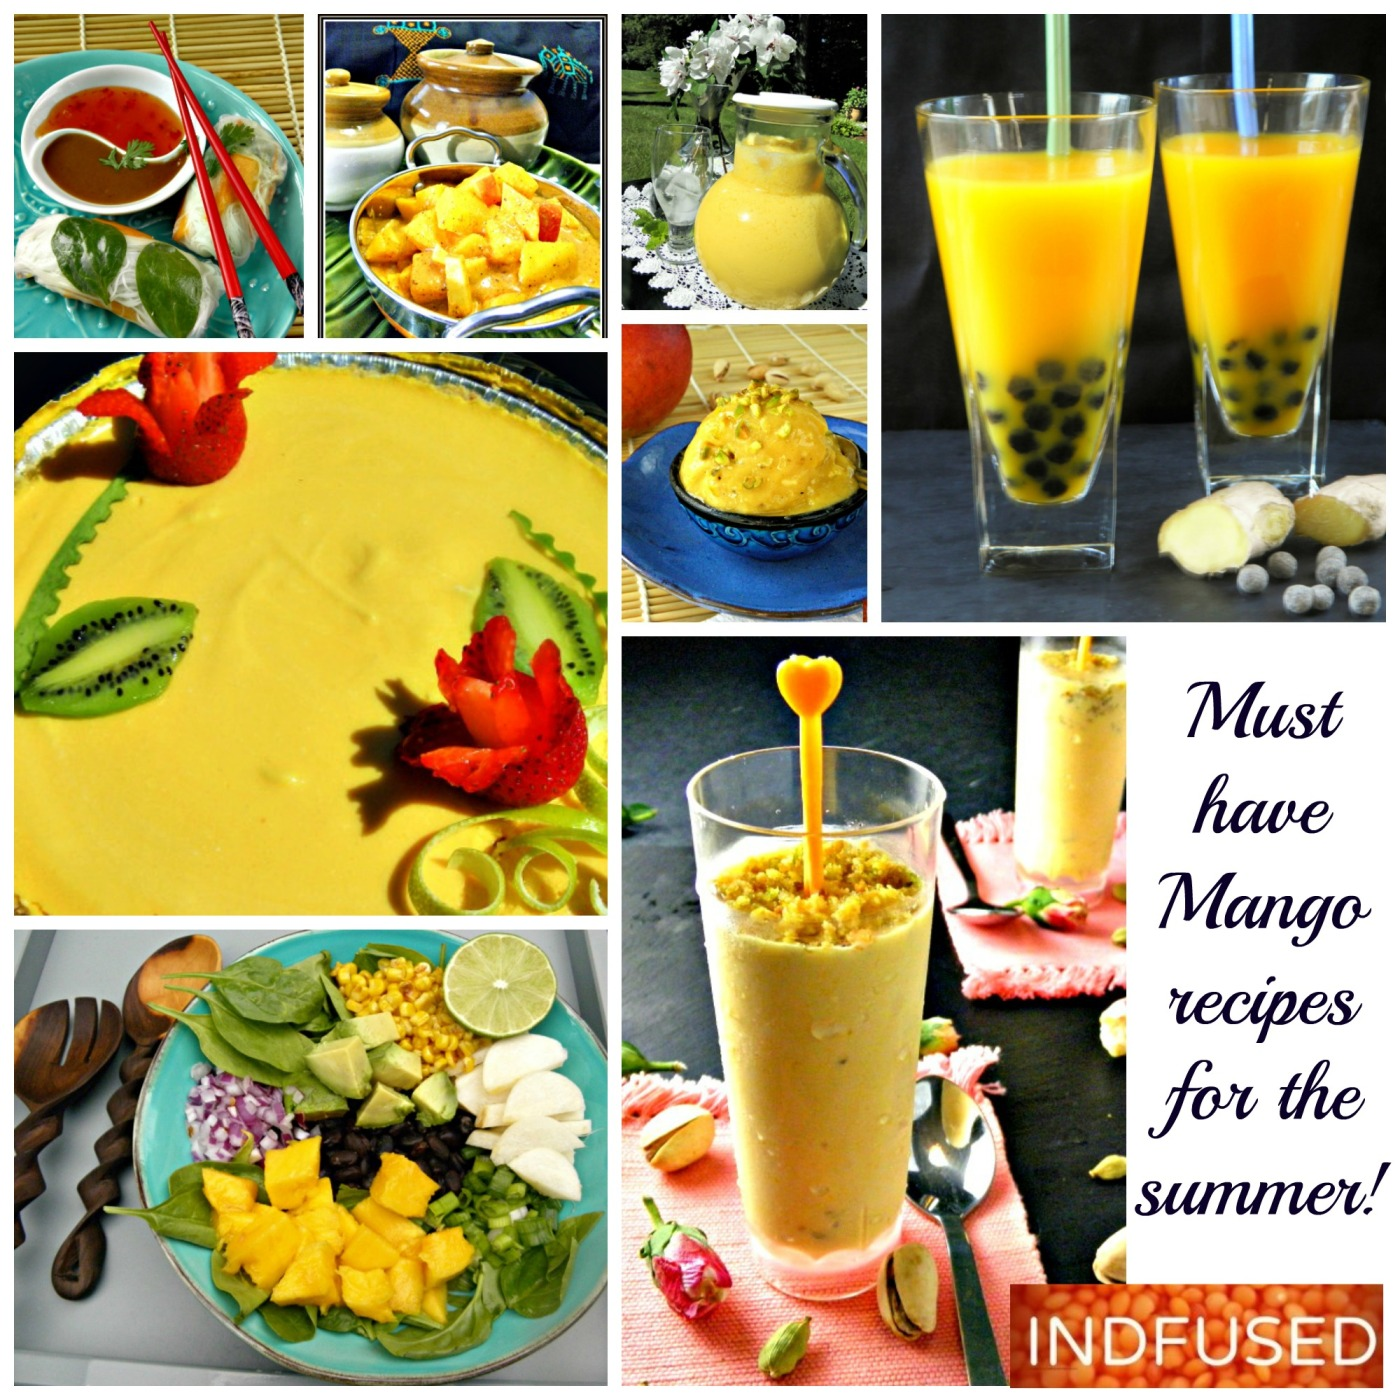 Easy recipes for Indfused's most popular savory and sweet mango recipes- Mango Summer Rolls, Mango Lassi, Mango Boba Tea, The Ambrosial Mango Pie, Vegan Mango Ice cream, Scrumptious Summer Salad and Mango Kulfi Shots!